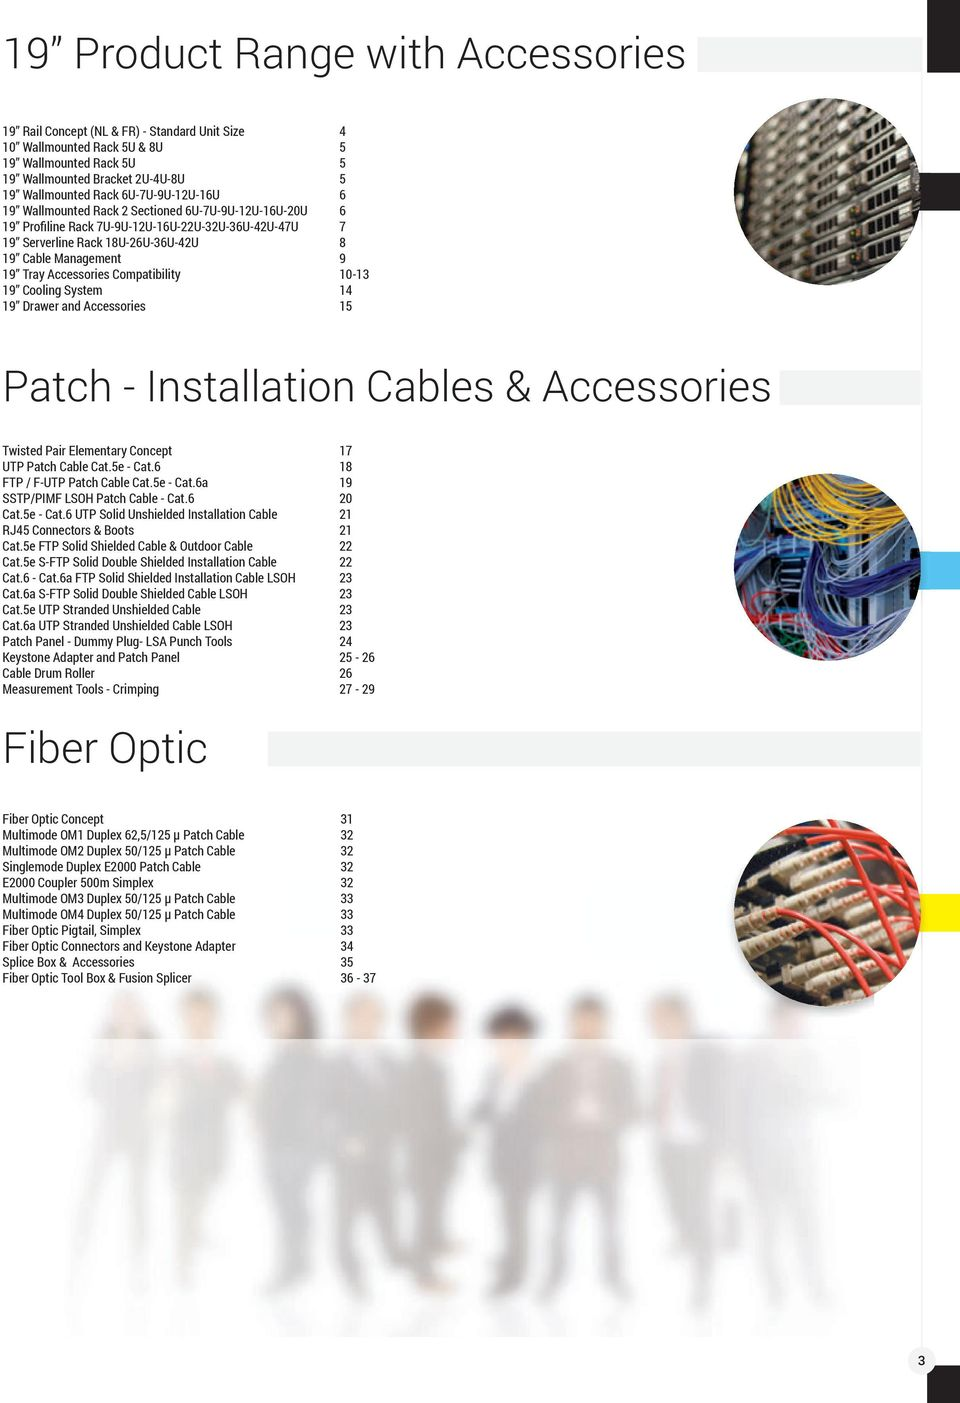 Compatibility 19 Cooling System 19 Drawer and Accessories 4 5 5 5 6 6 7 8 9 10-13 14 15 Patch - Installation Cables & Accessories Twisted Pair Elementary Concept UTP Patch Cable Cat.5e - Cat.